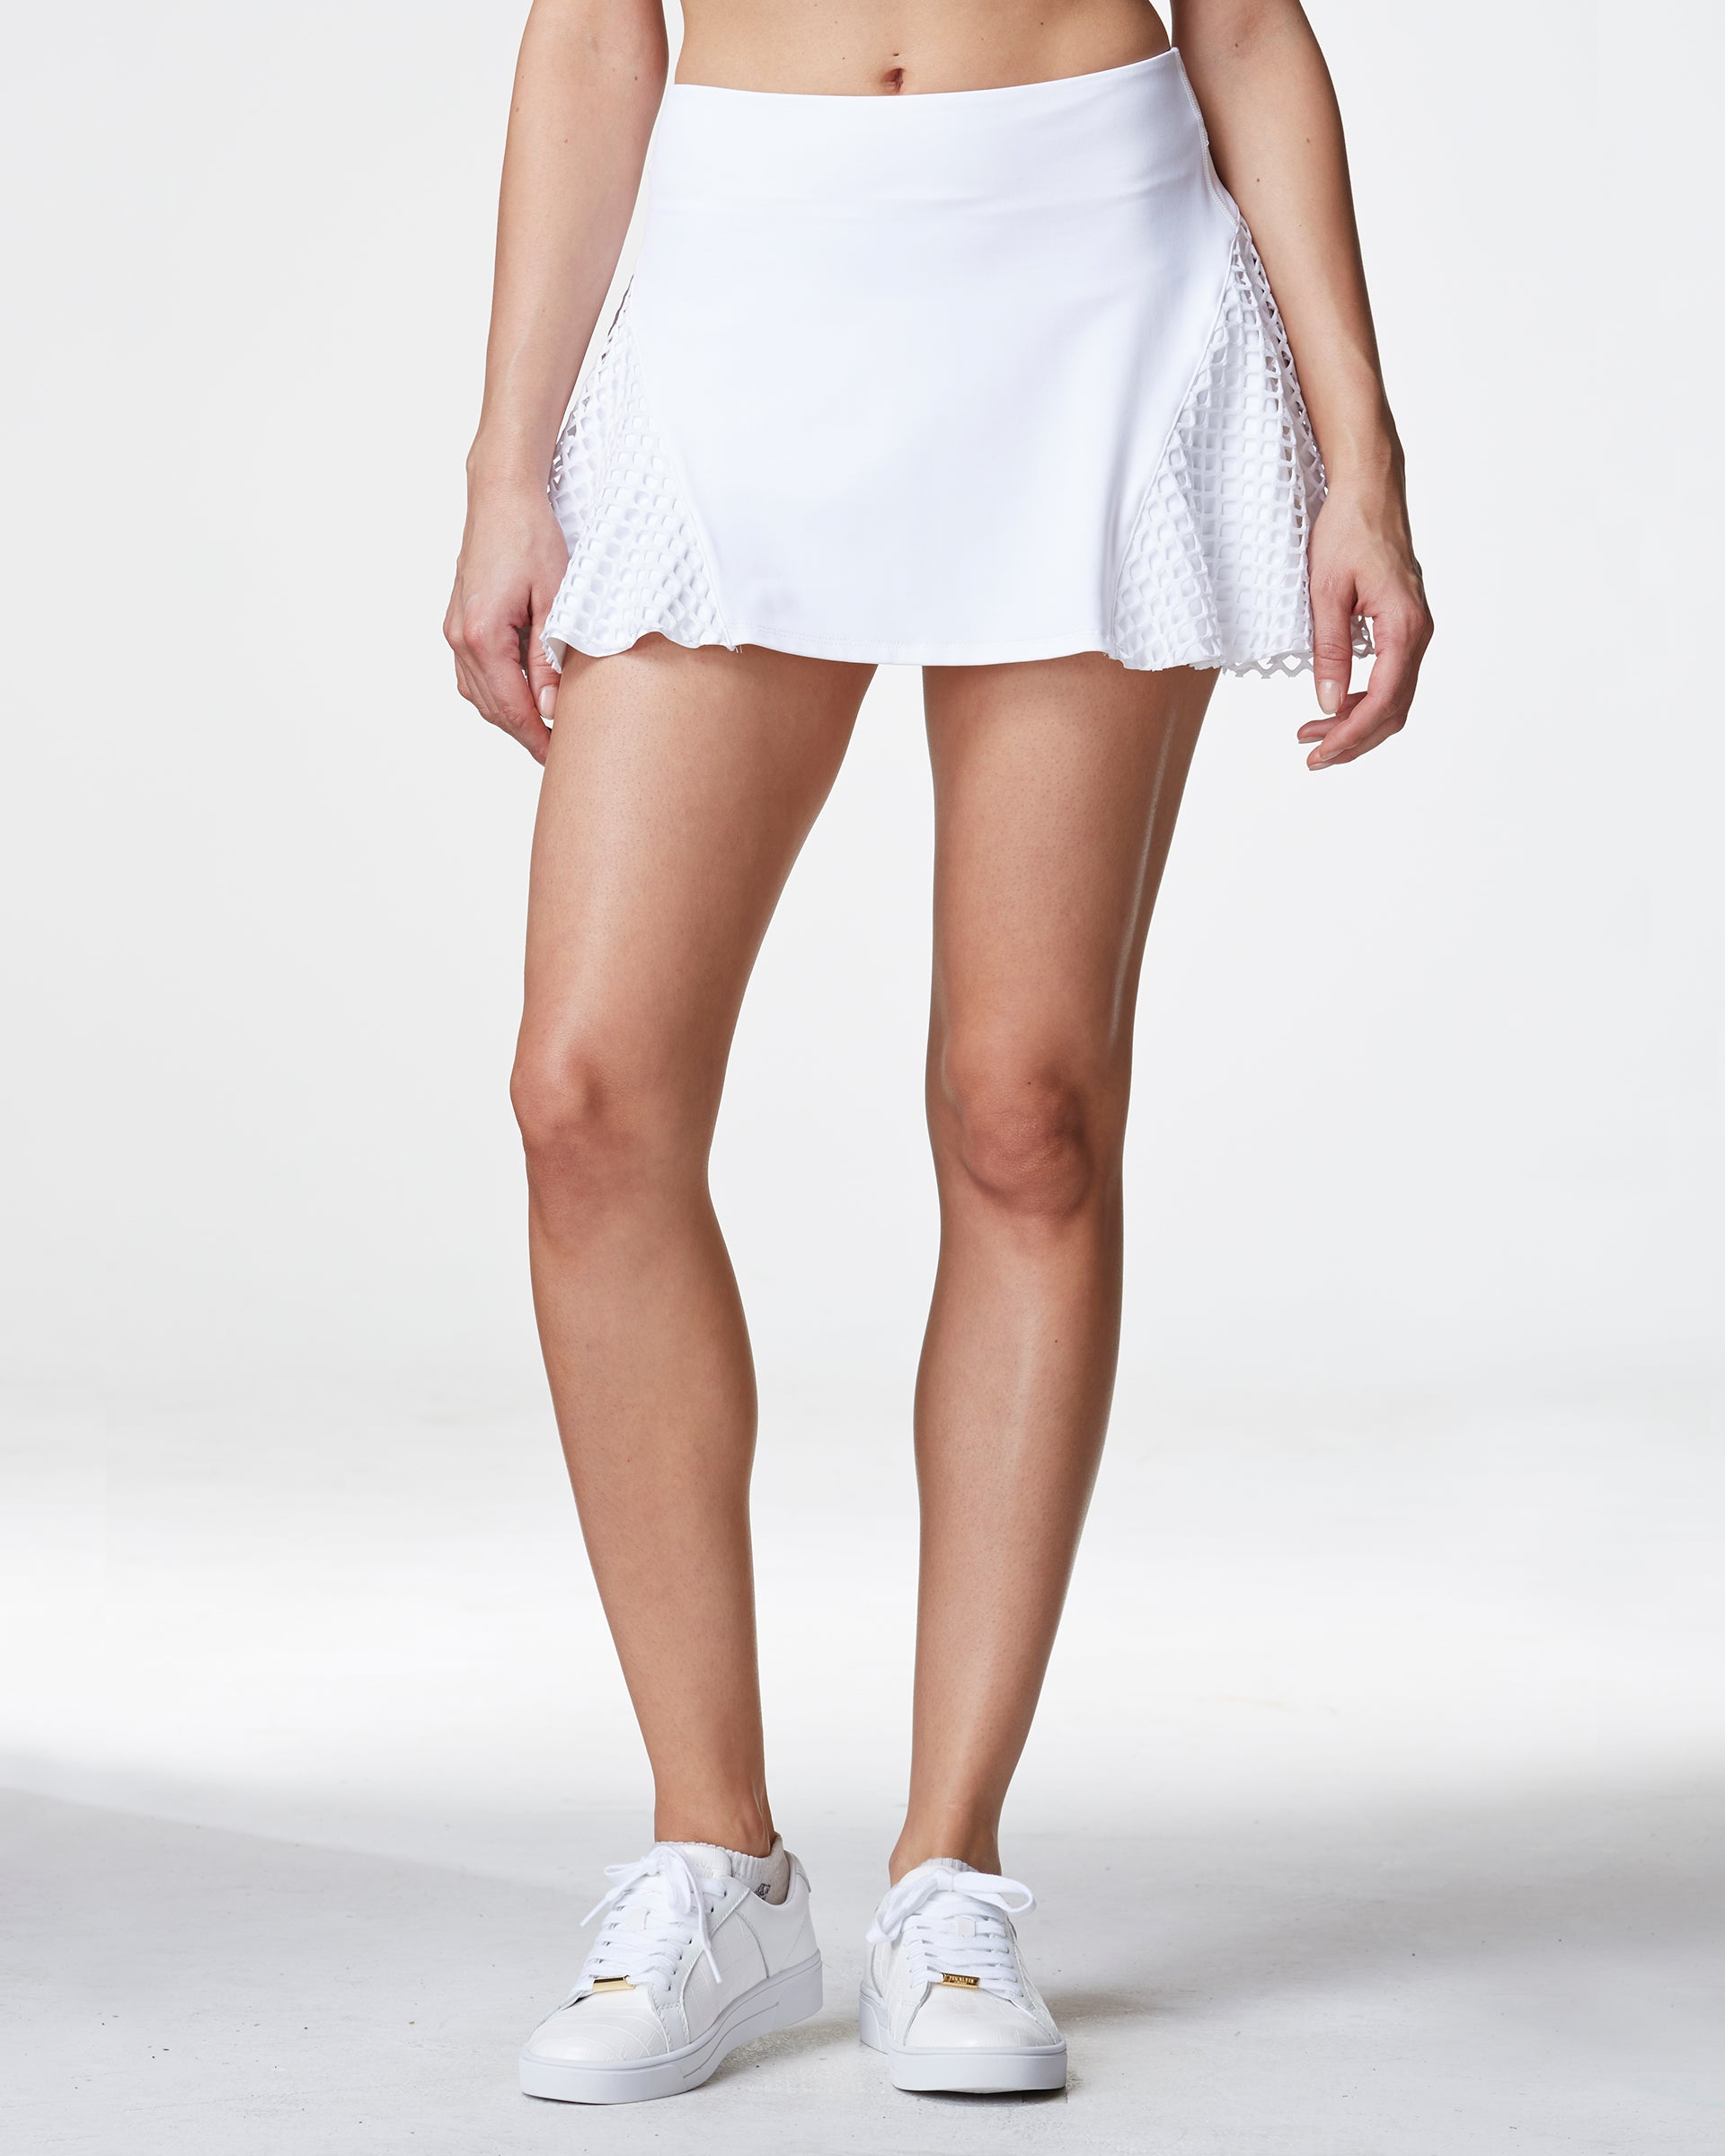 Deuce Tennis Skirt - White